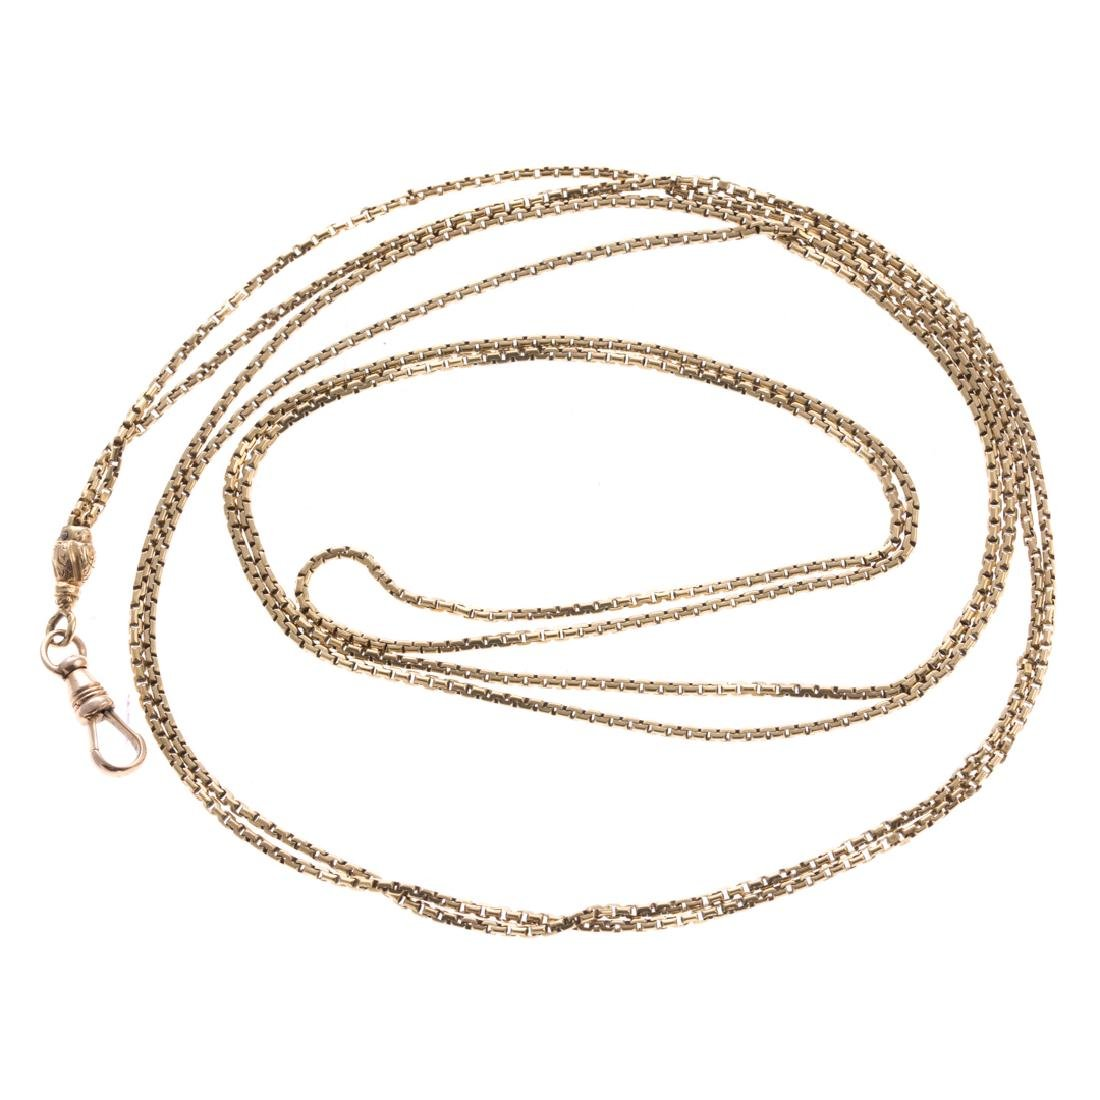 A Long Chain Link Necklace in 14K Yellow Gold